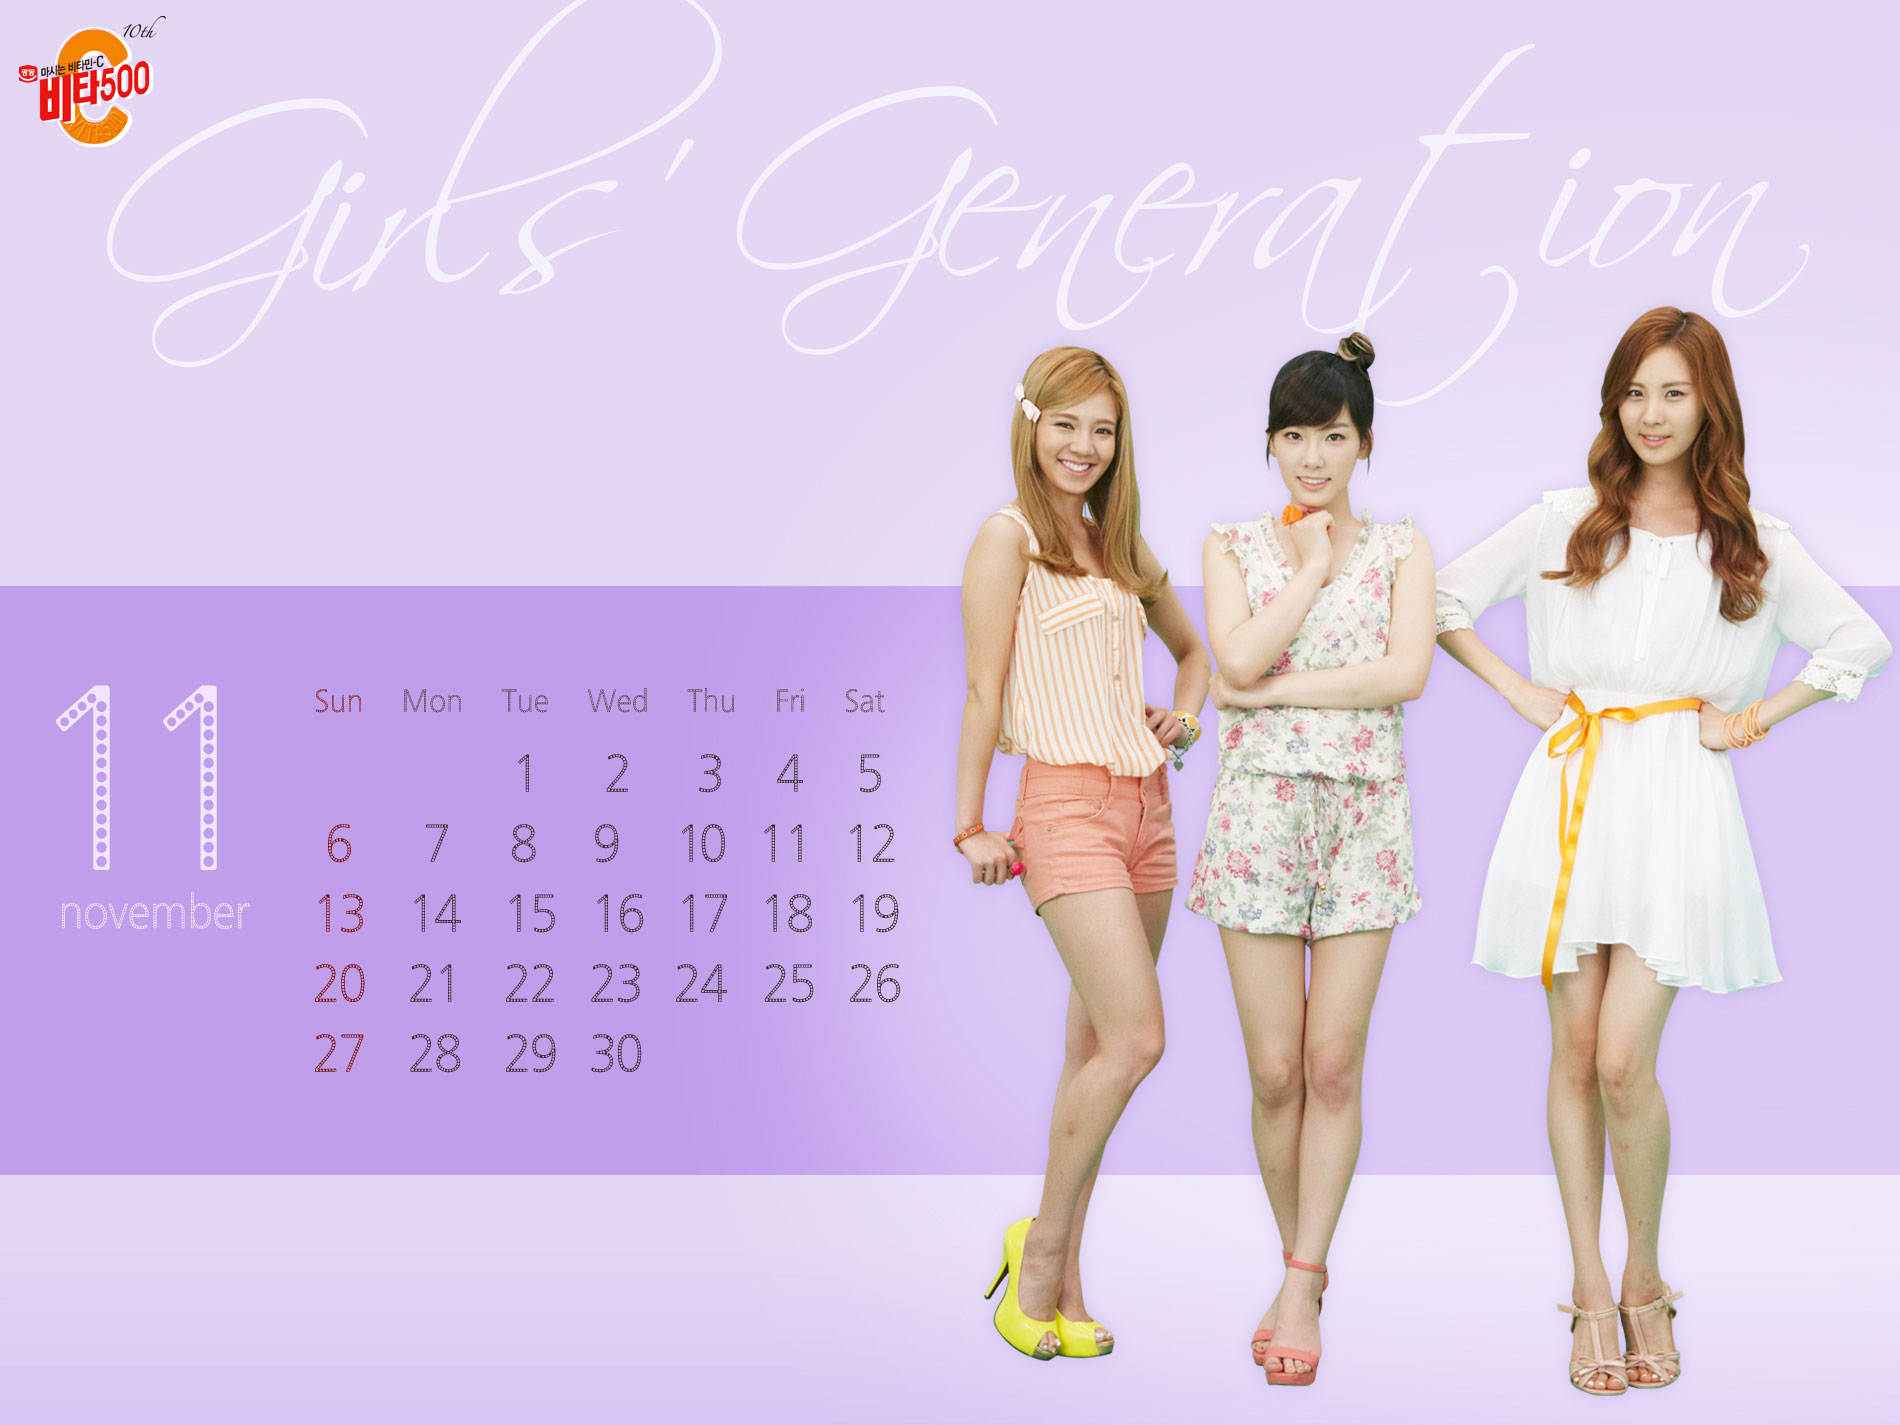 SNSD Vita500 November 2011 calendar wallpaper